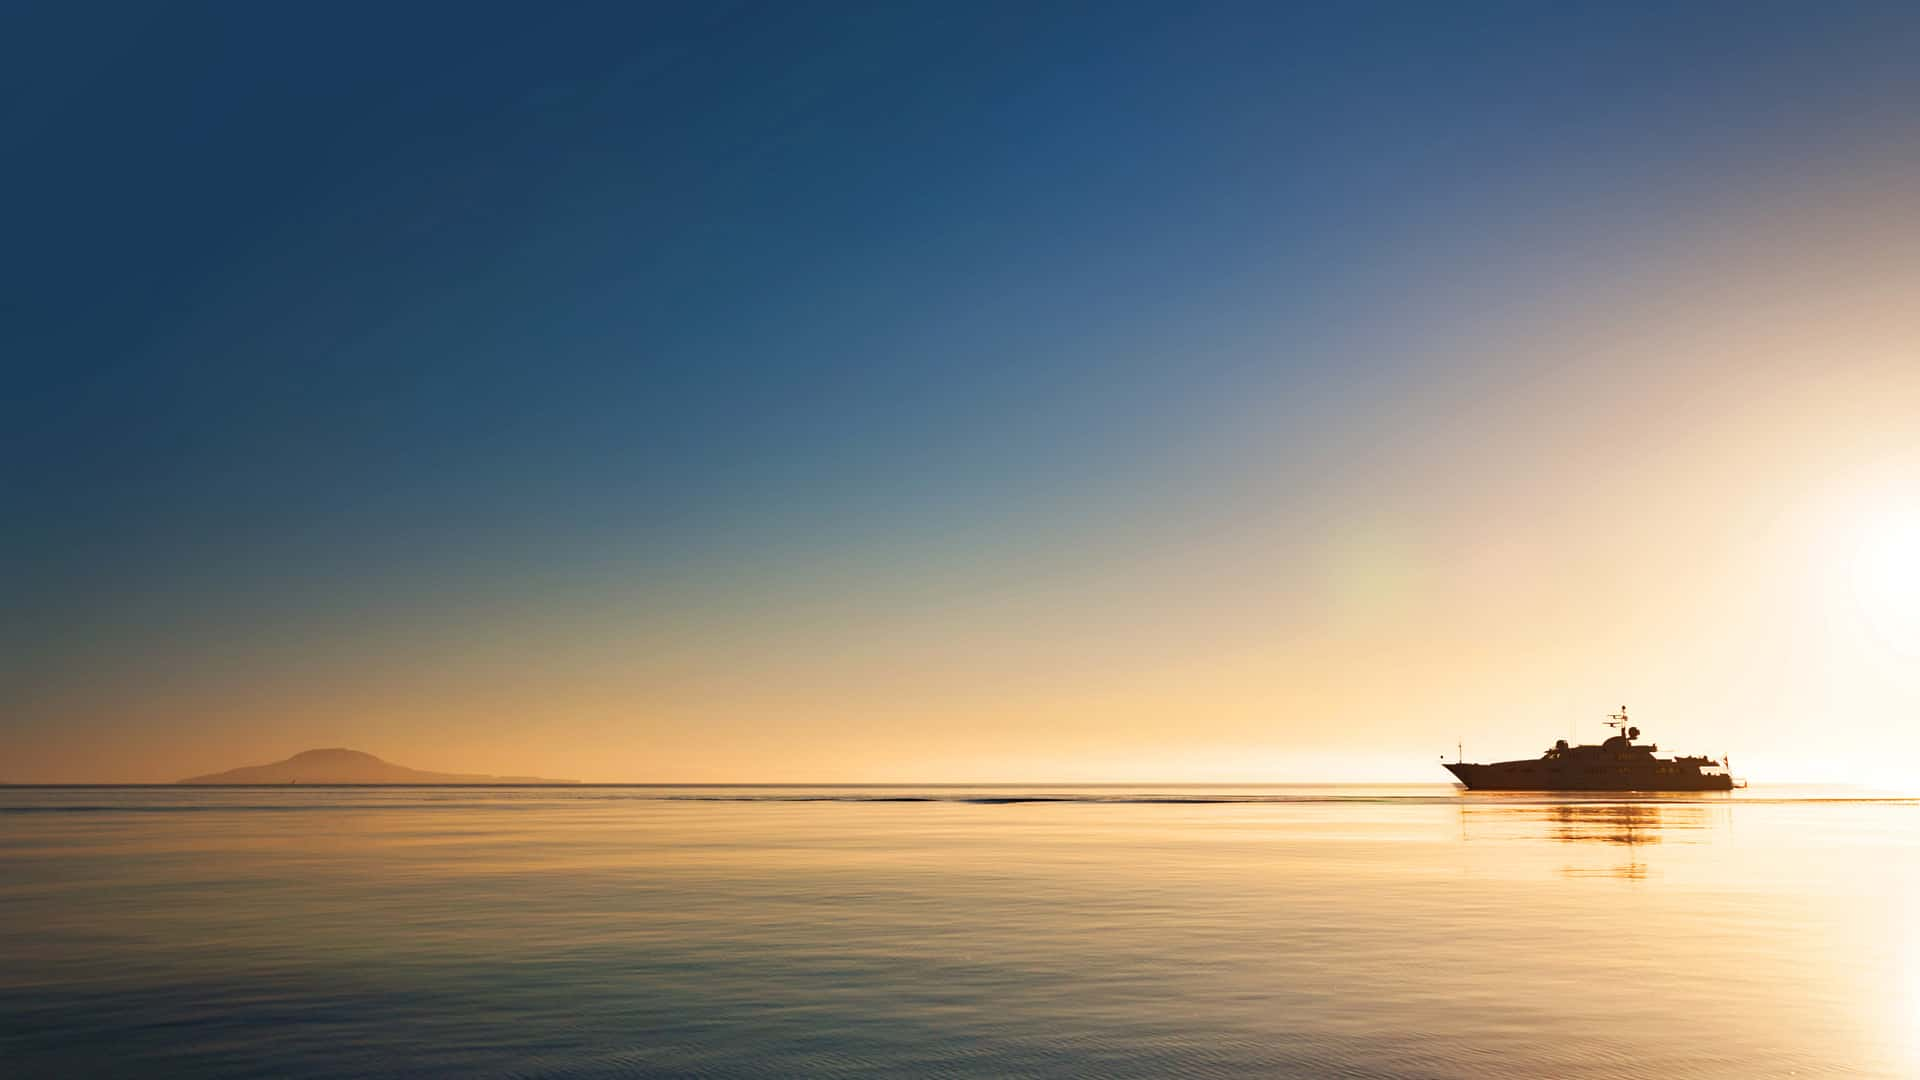 Superyacht cruising on a calm ocean at sunset